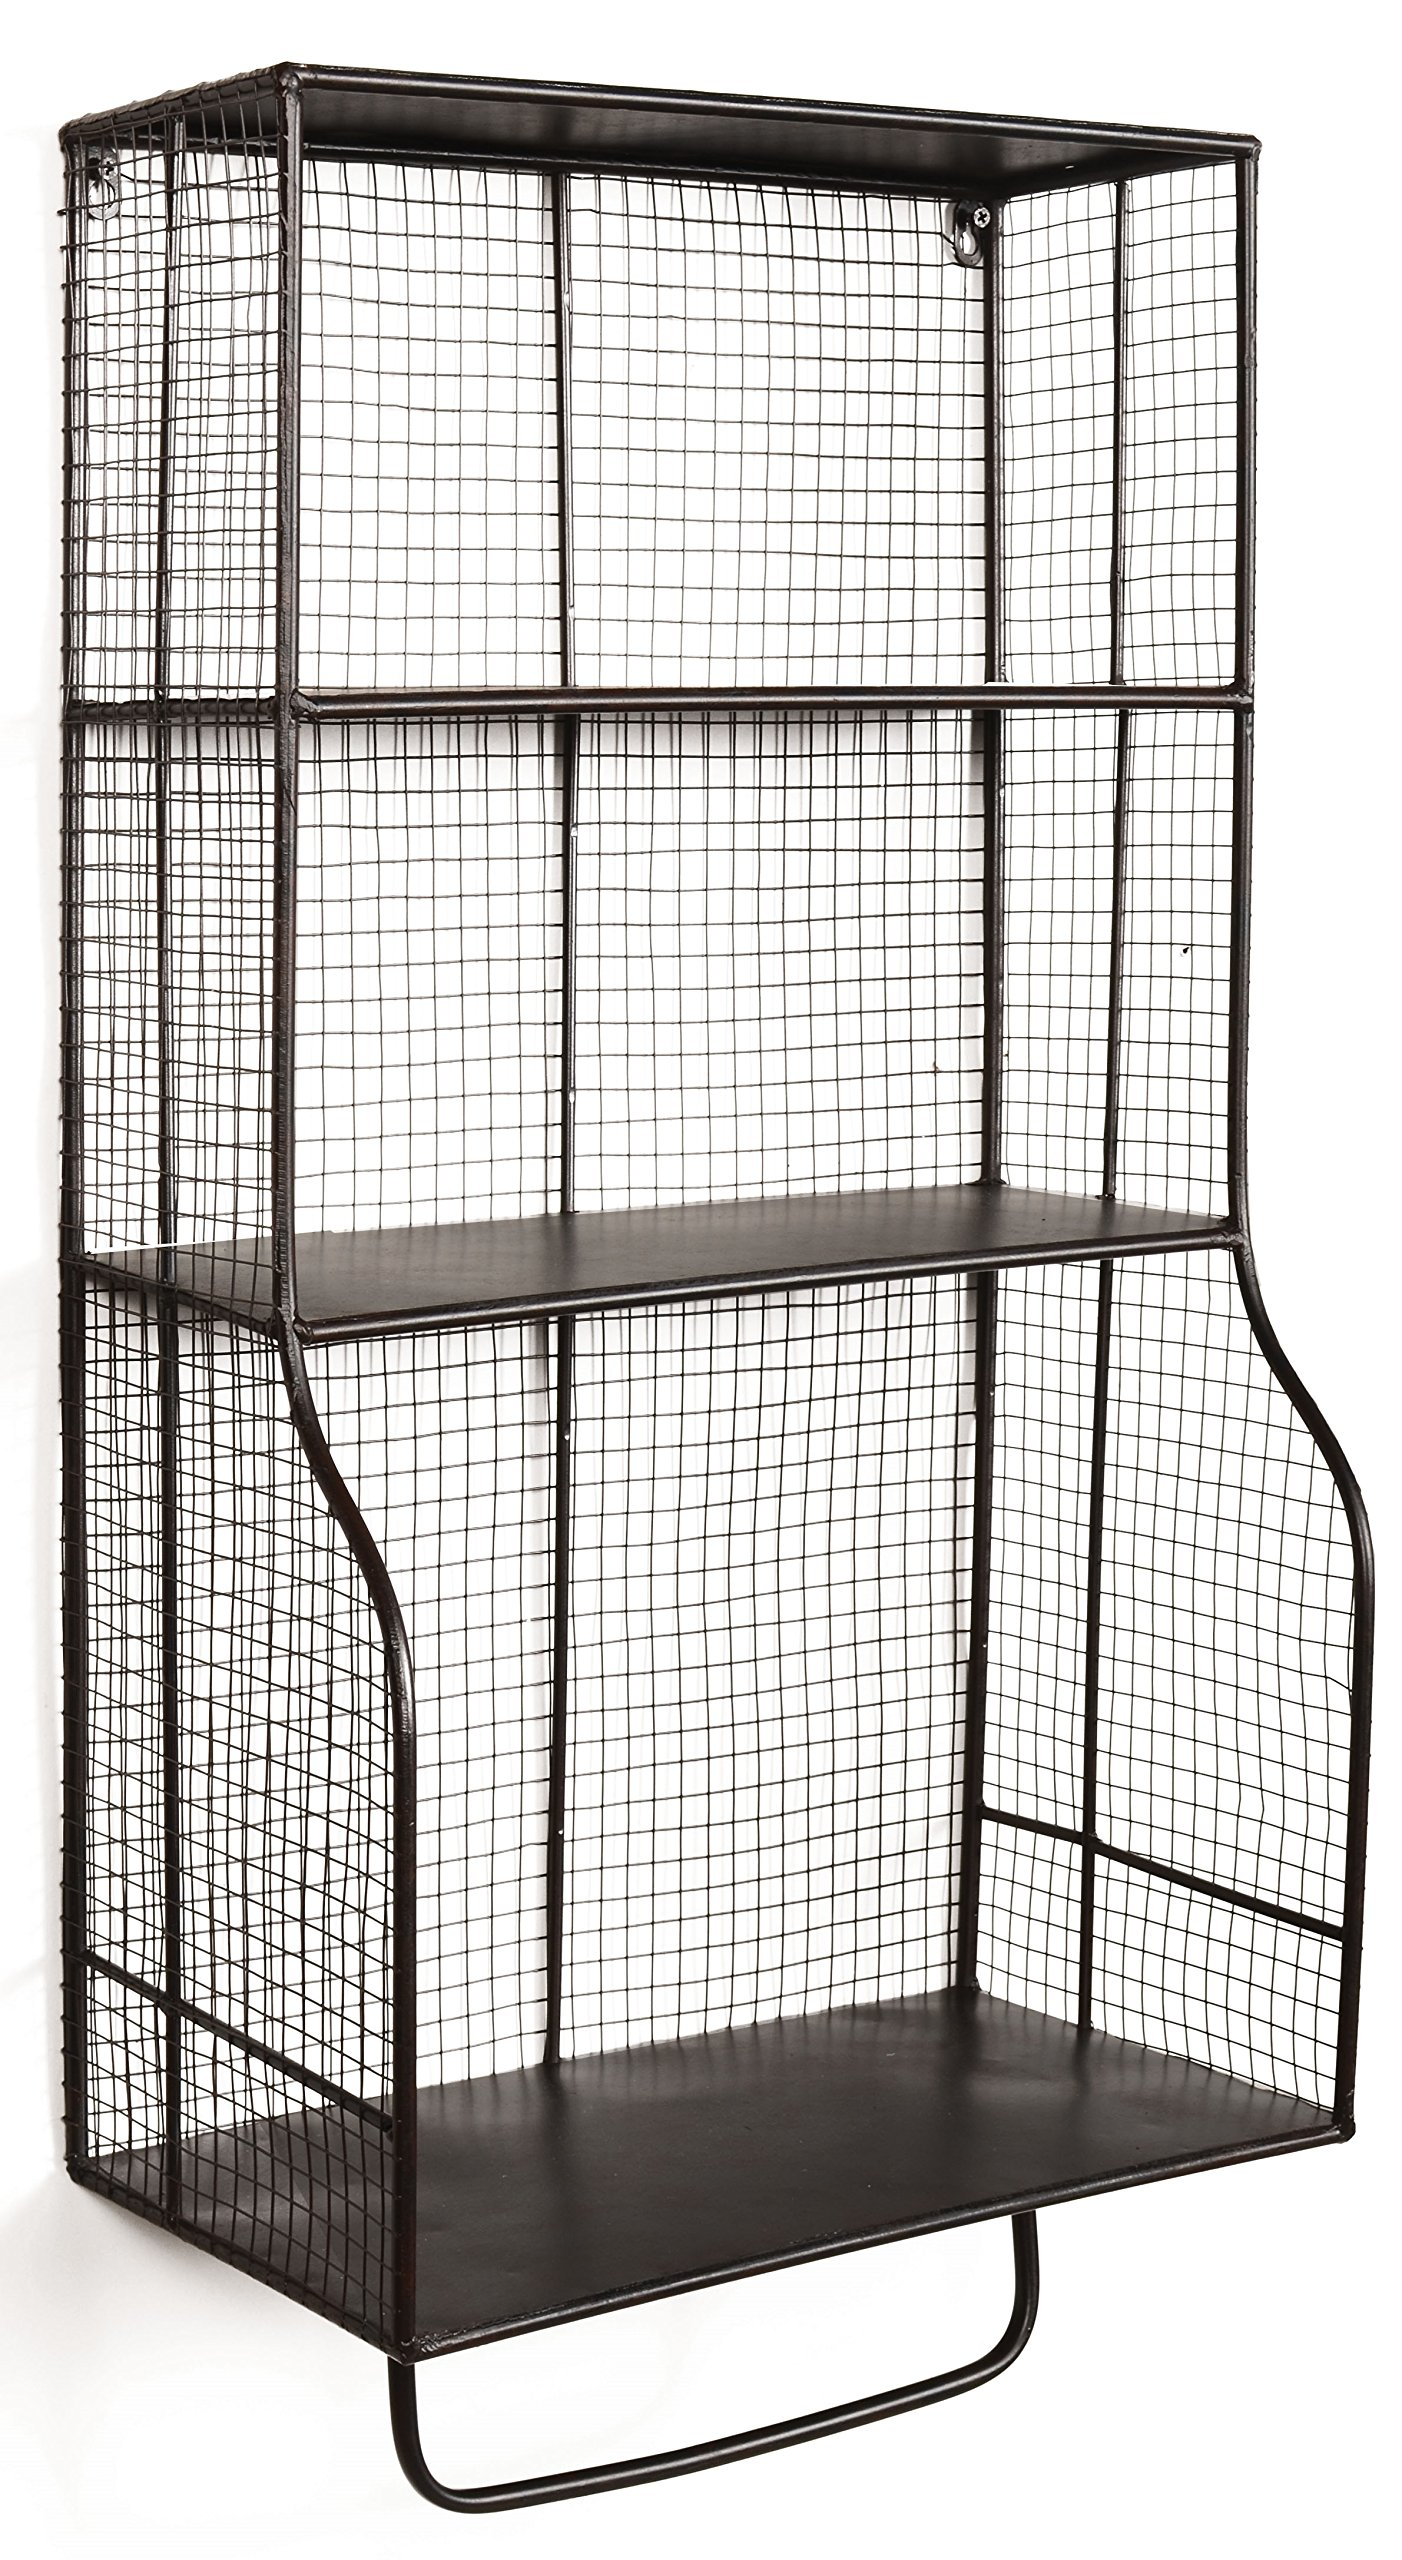 Linon AMMESHELFW1 Distressed Wall Storage Organizer, Brown - Rustic, distressed black metal Grid metal design Three shelves for ample storage - living-room-furniture, living-room, bookcases-bookshelves - 9182LdExAcL -